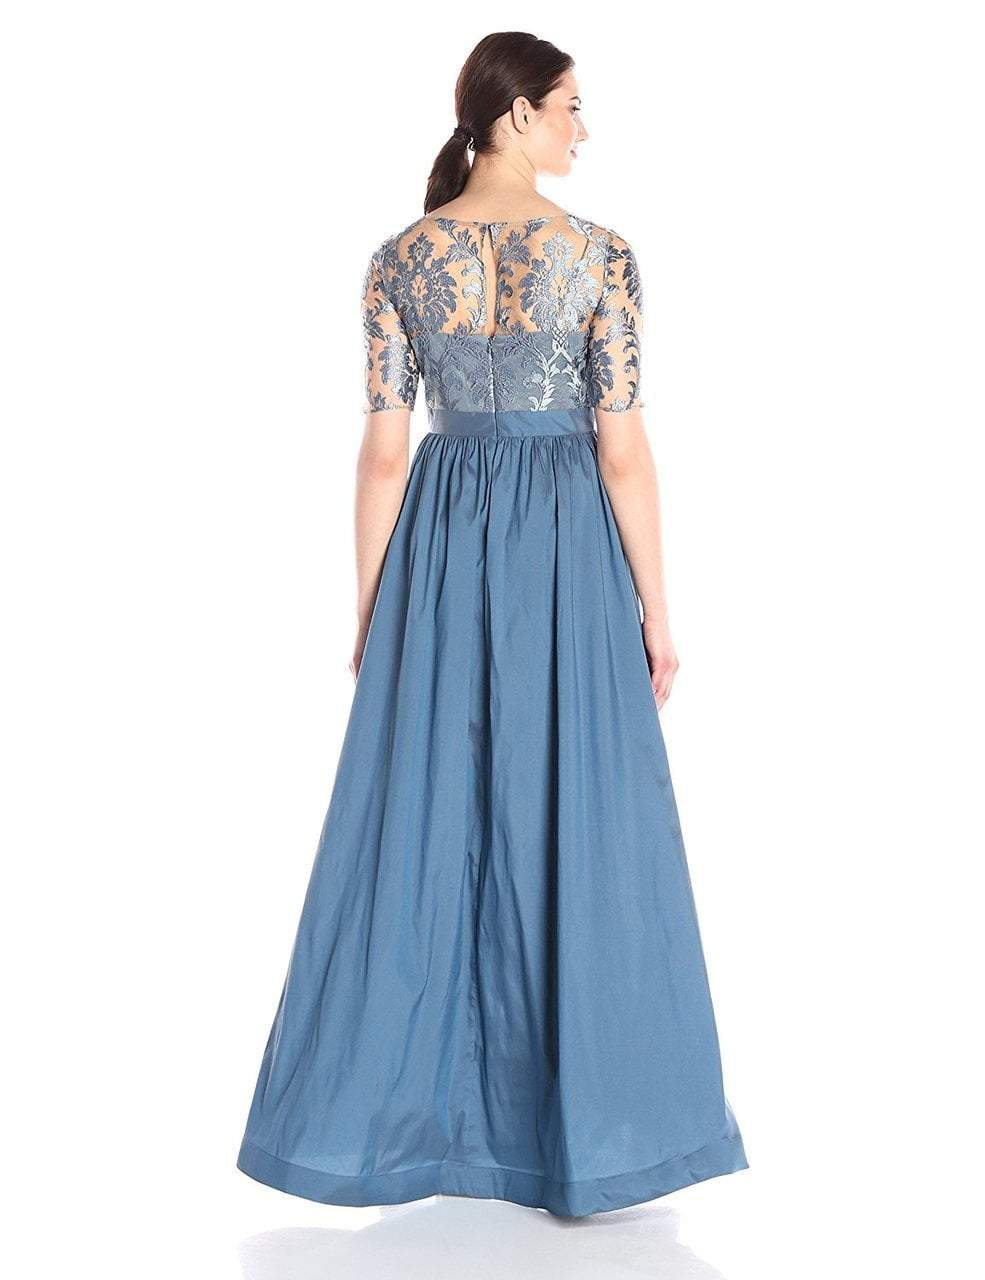 Adrianna Papell - 81920870 Lace Illusion Bateau Taffeta A-line Dress in Blue